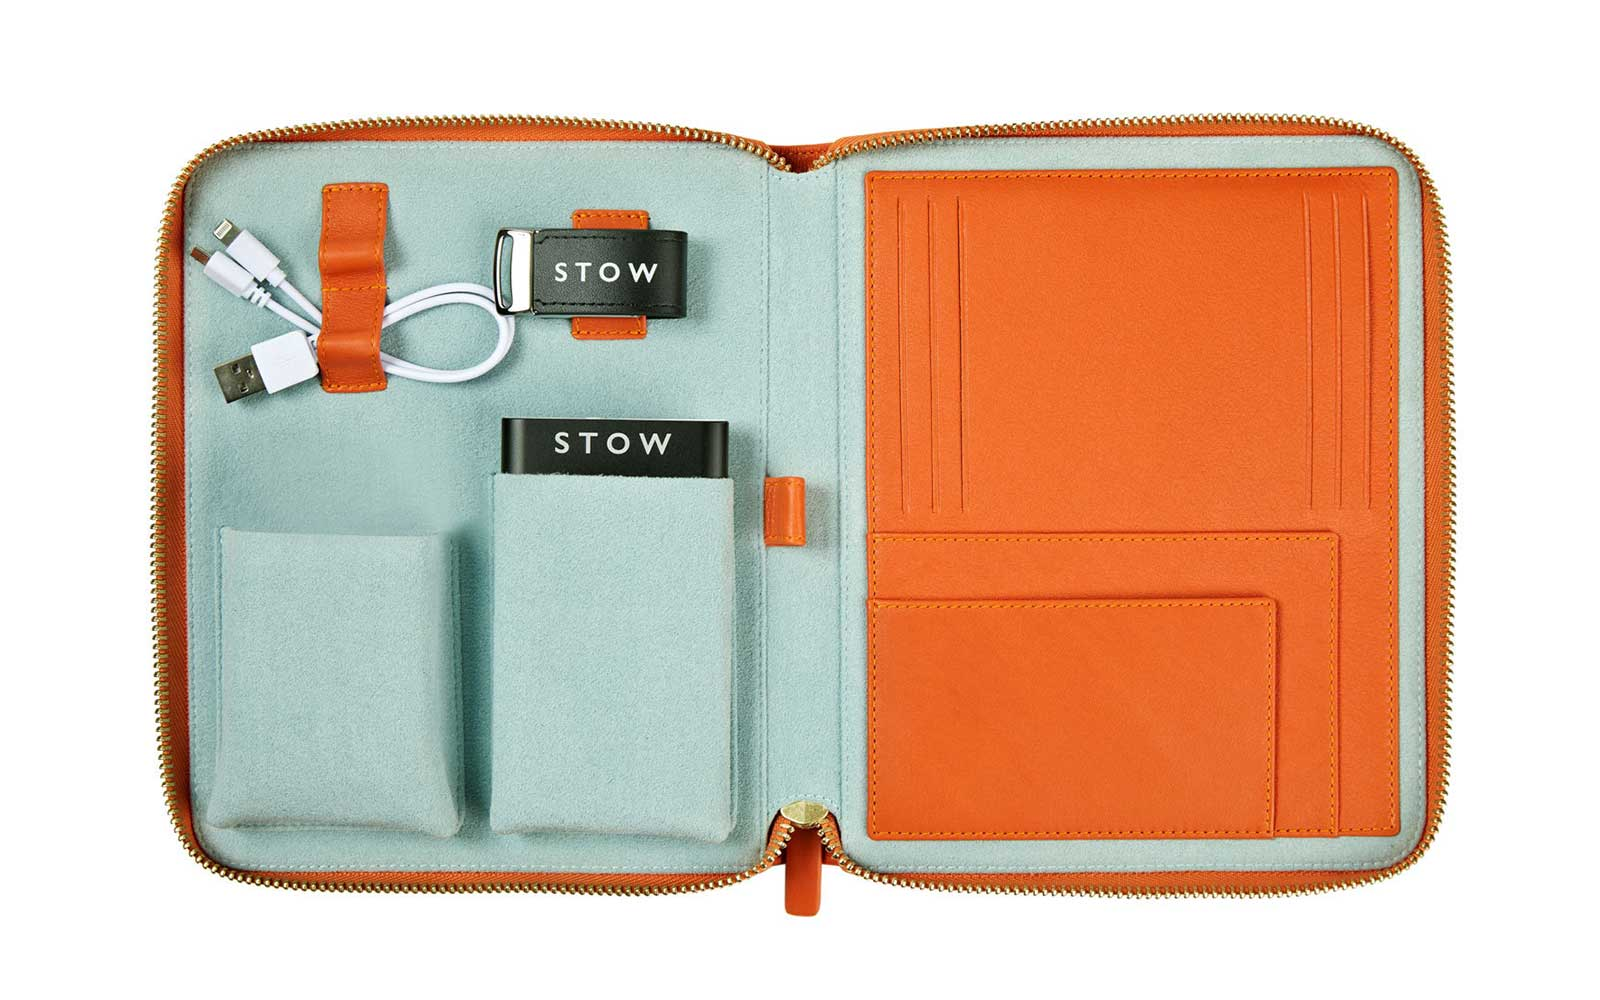 Stowe travel case